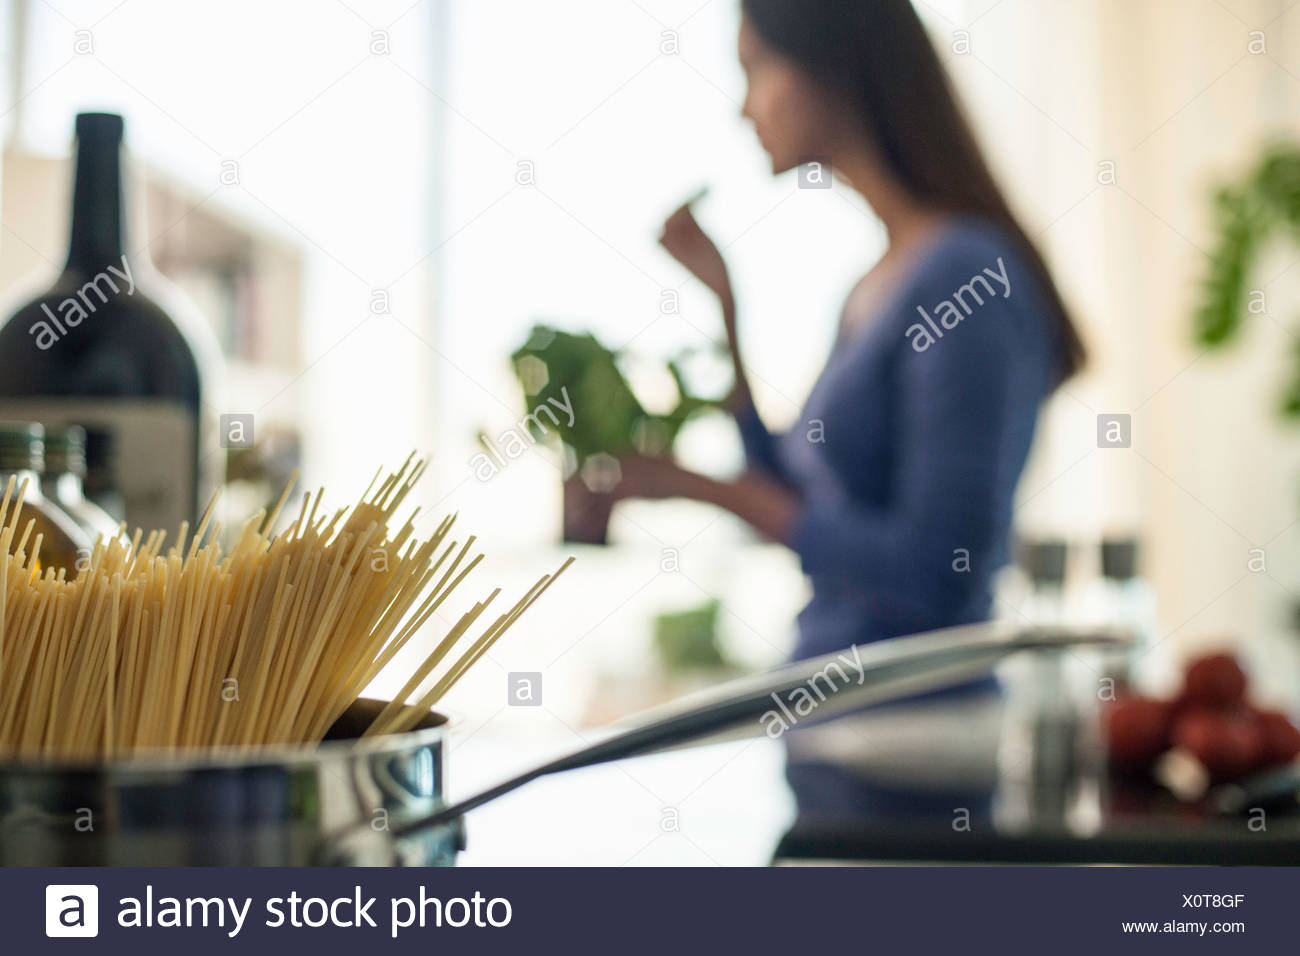 Blurred image of young woman preparing food in kitchen - Stock Image